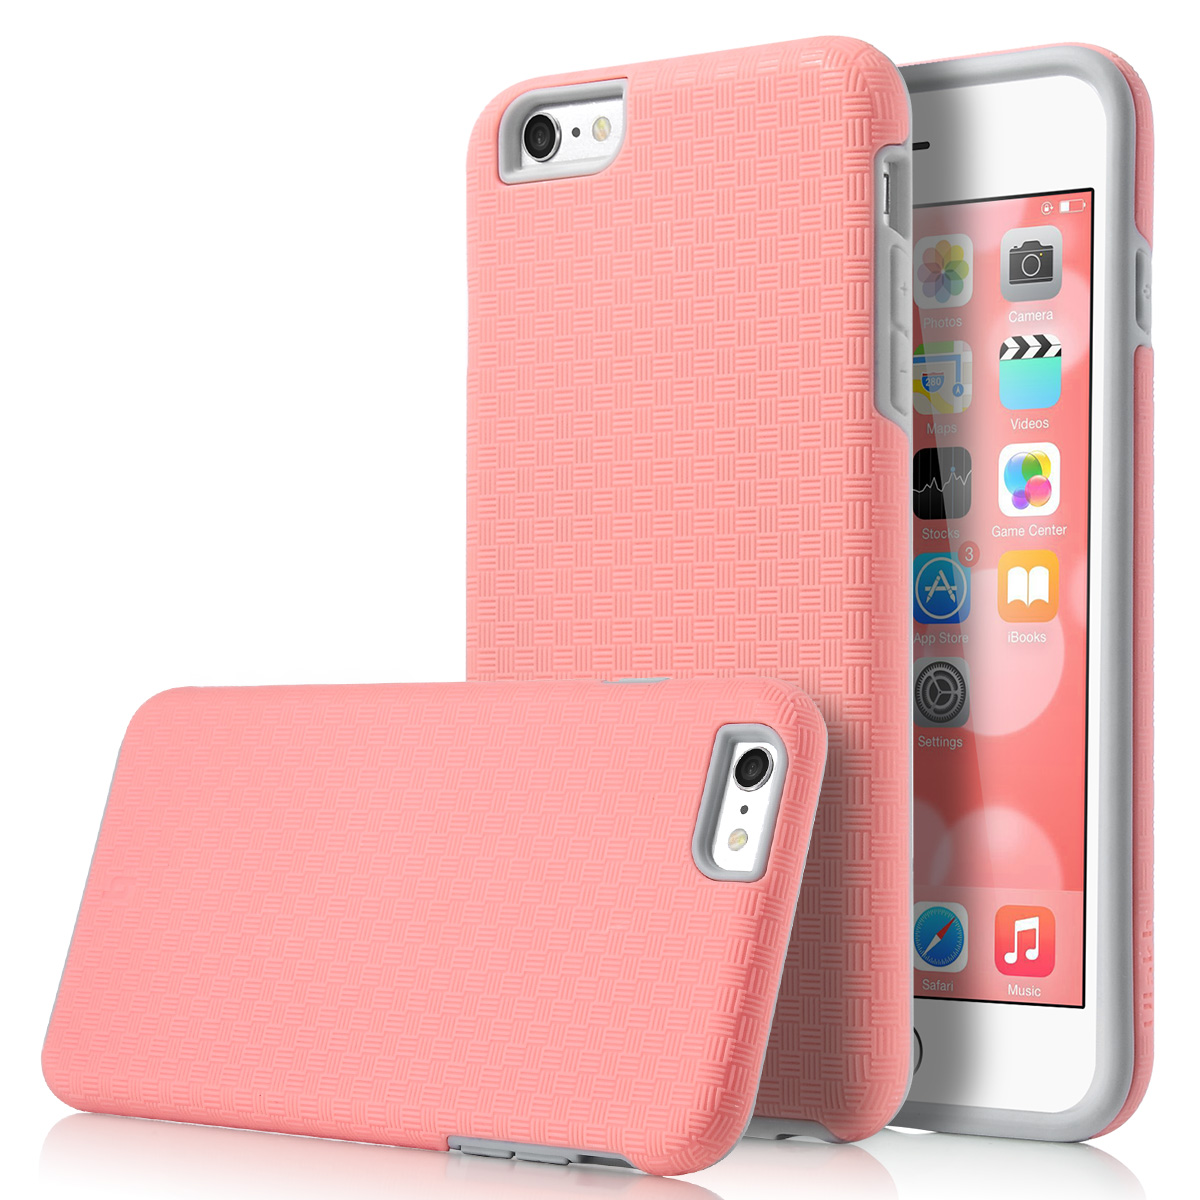 apple iphone 6 plus case shockproof slick armor hybrid rugged cover for apple 1412